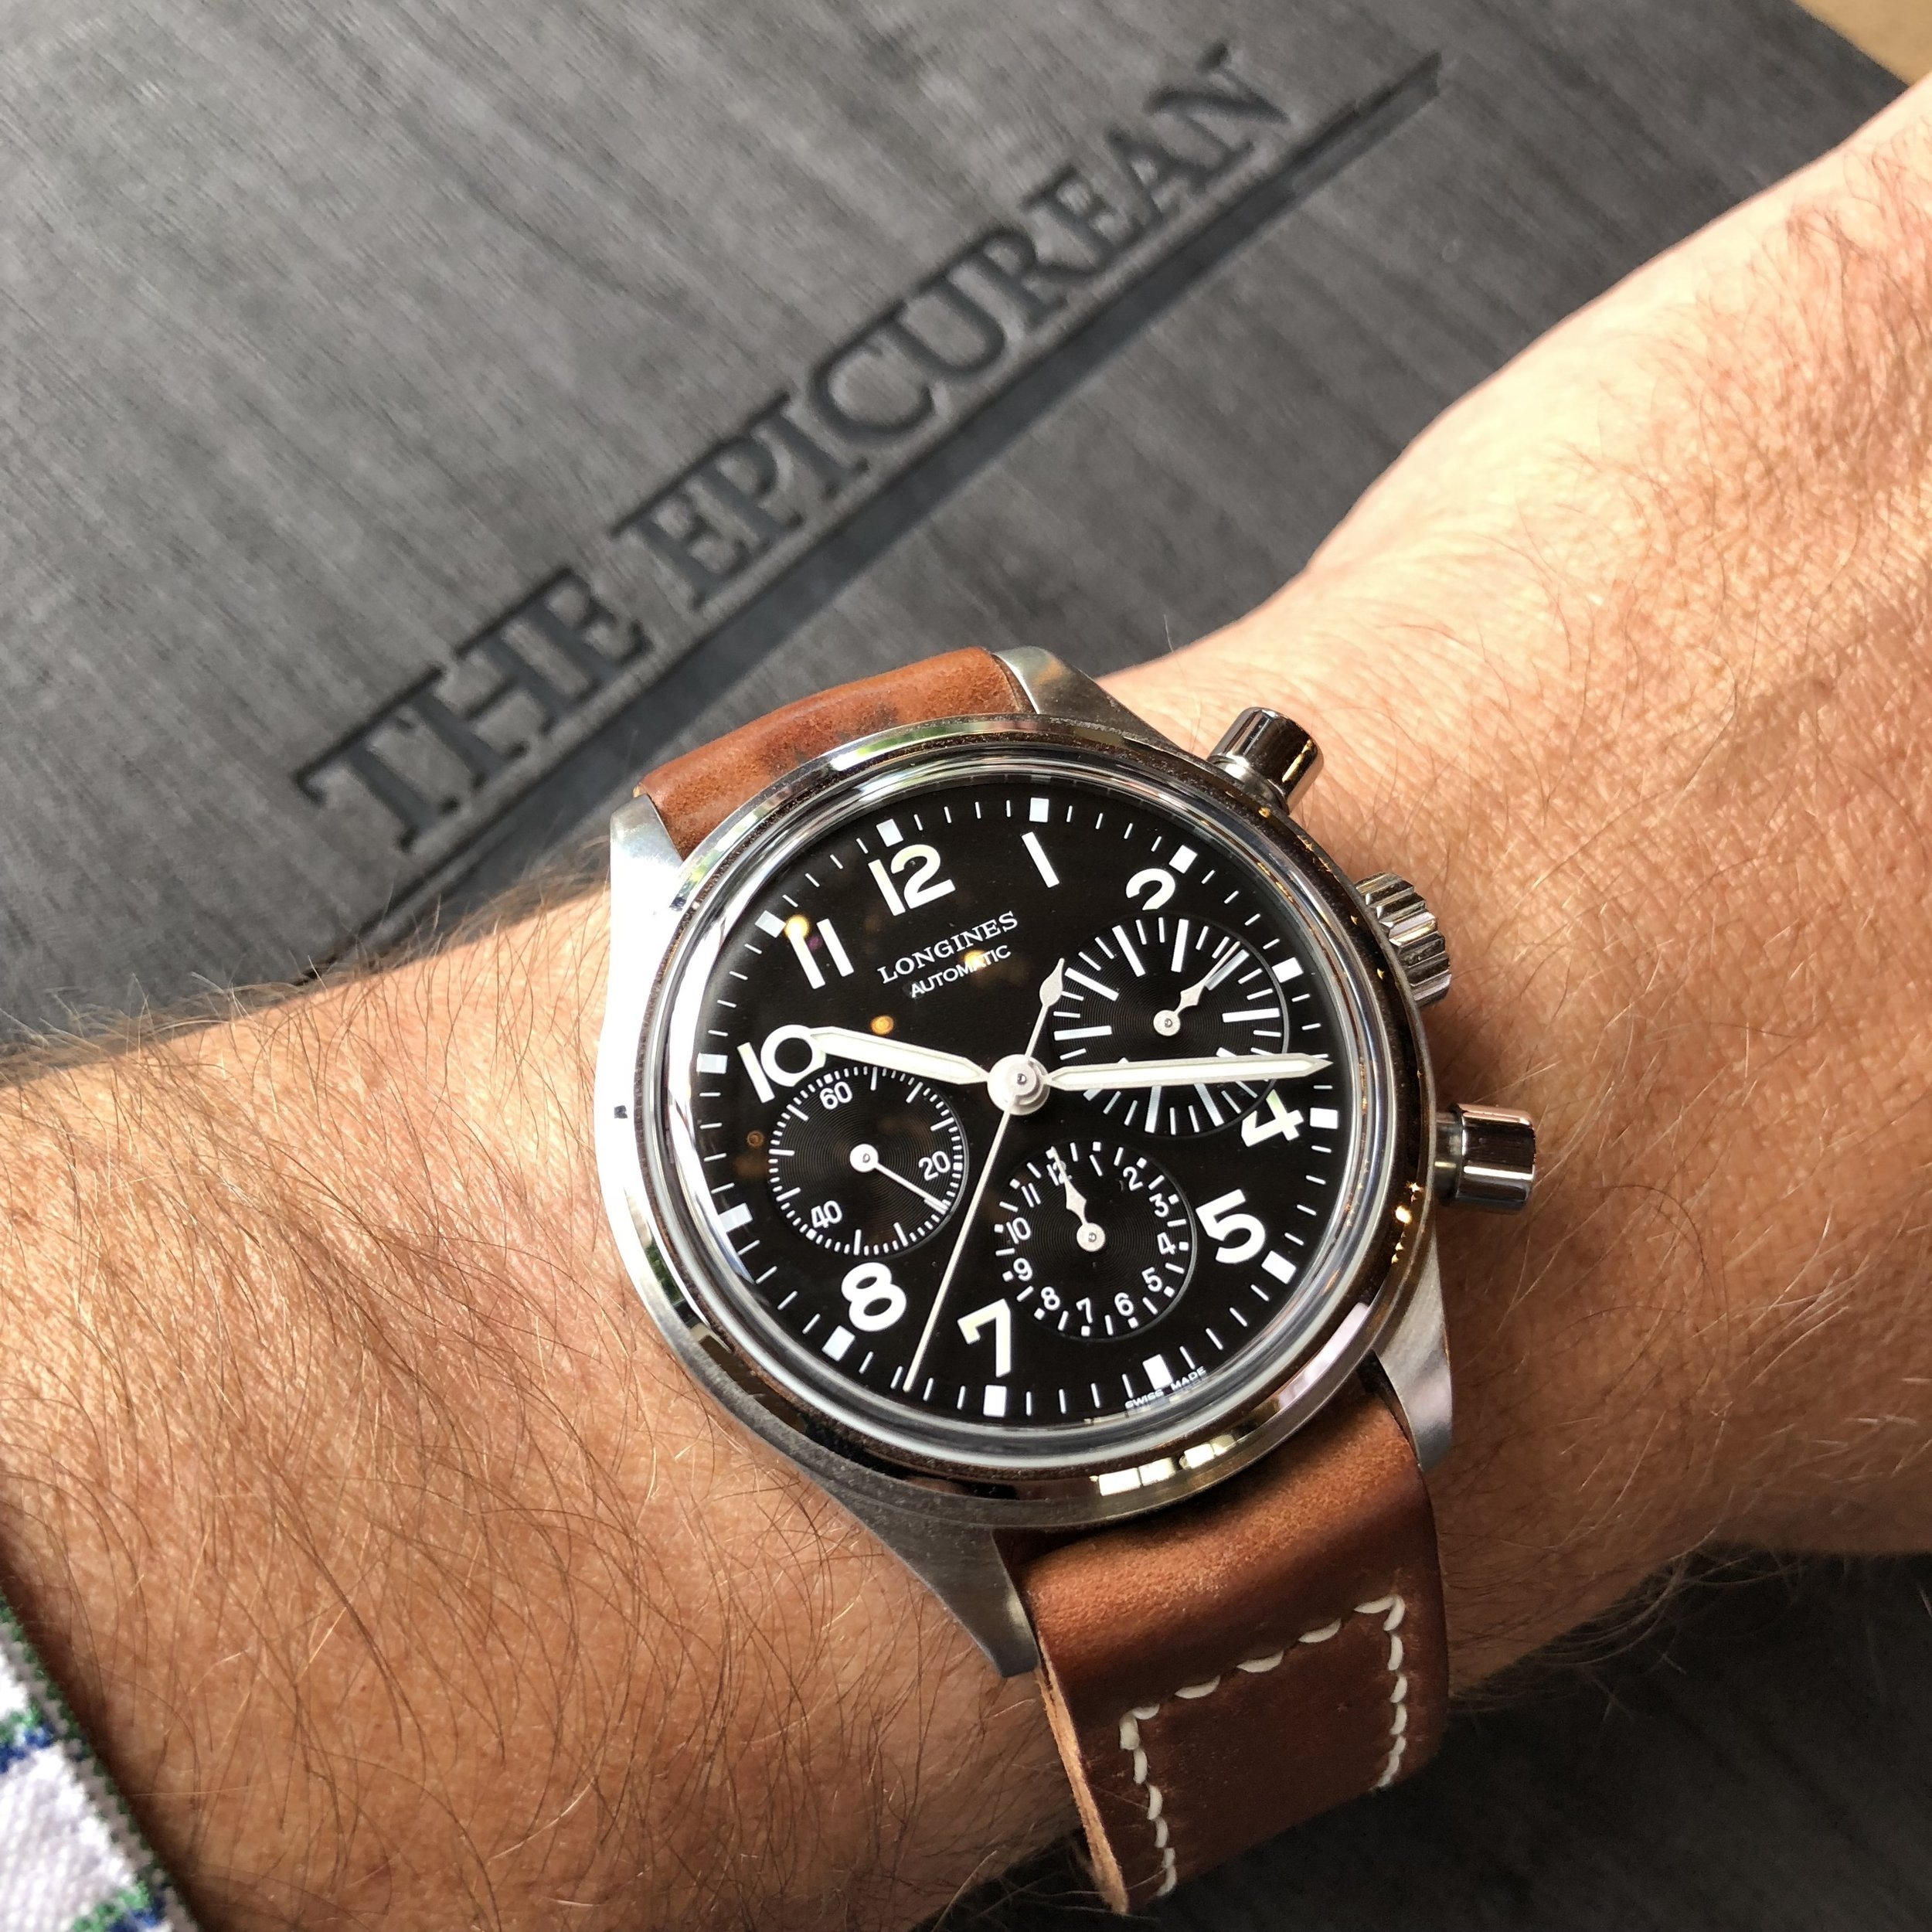 The Longines Avigation BigEye, reference L2.816.4.